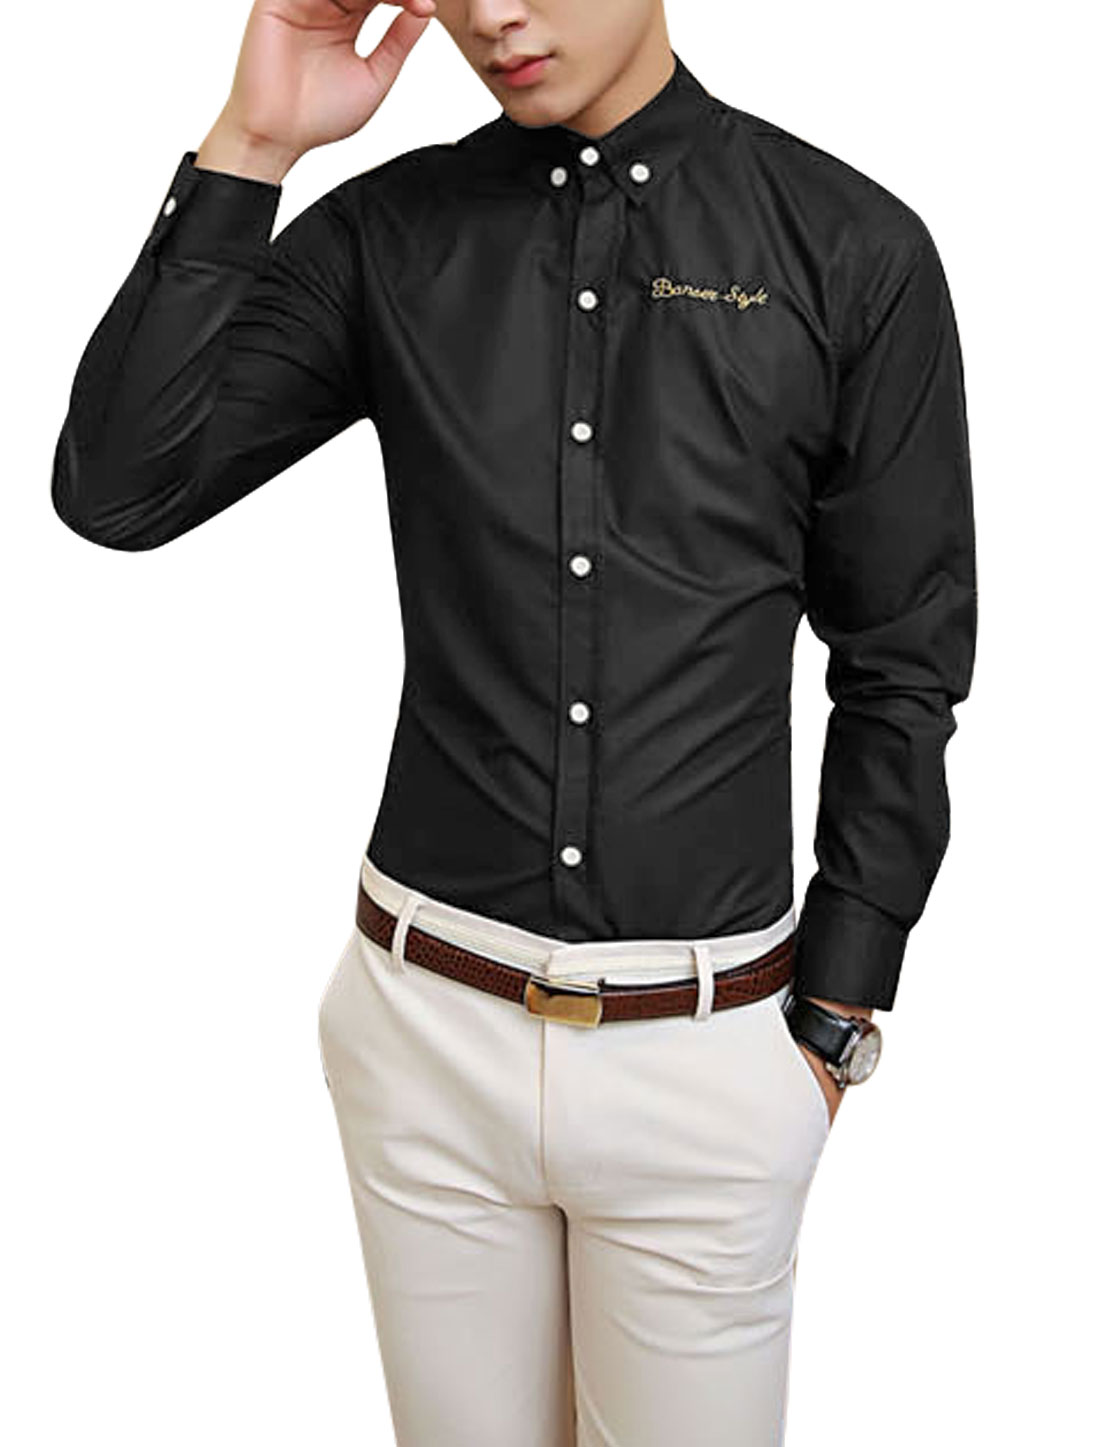 Man Korean Style Button Closed Point Collar Black Shirt M